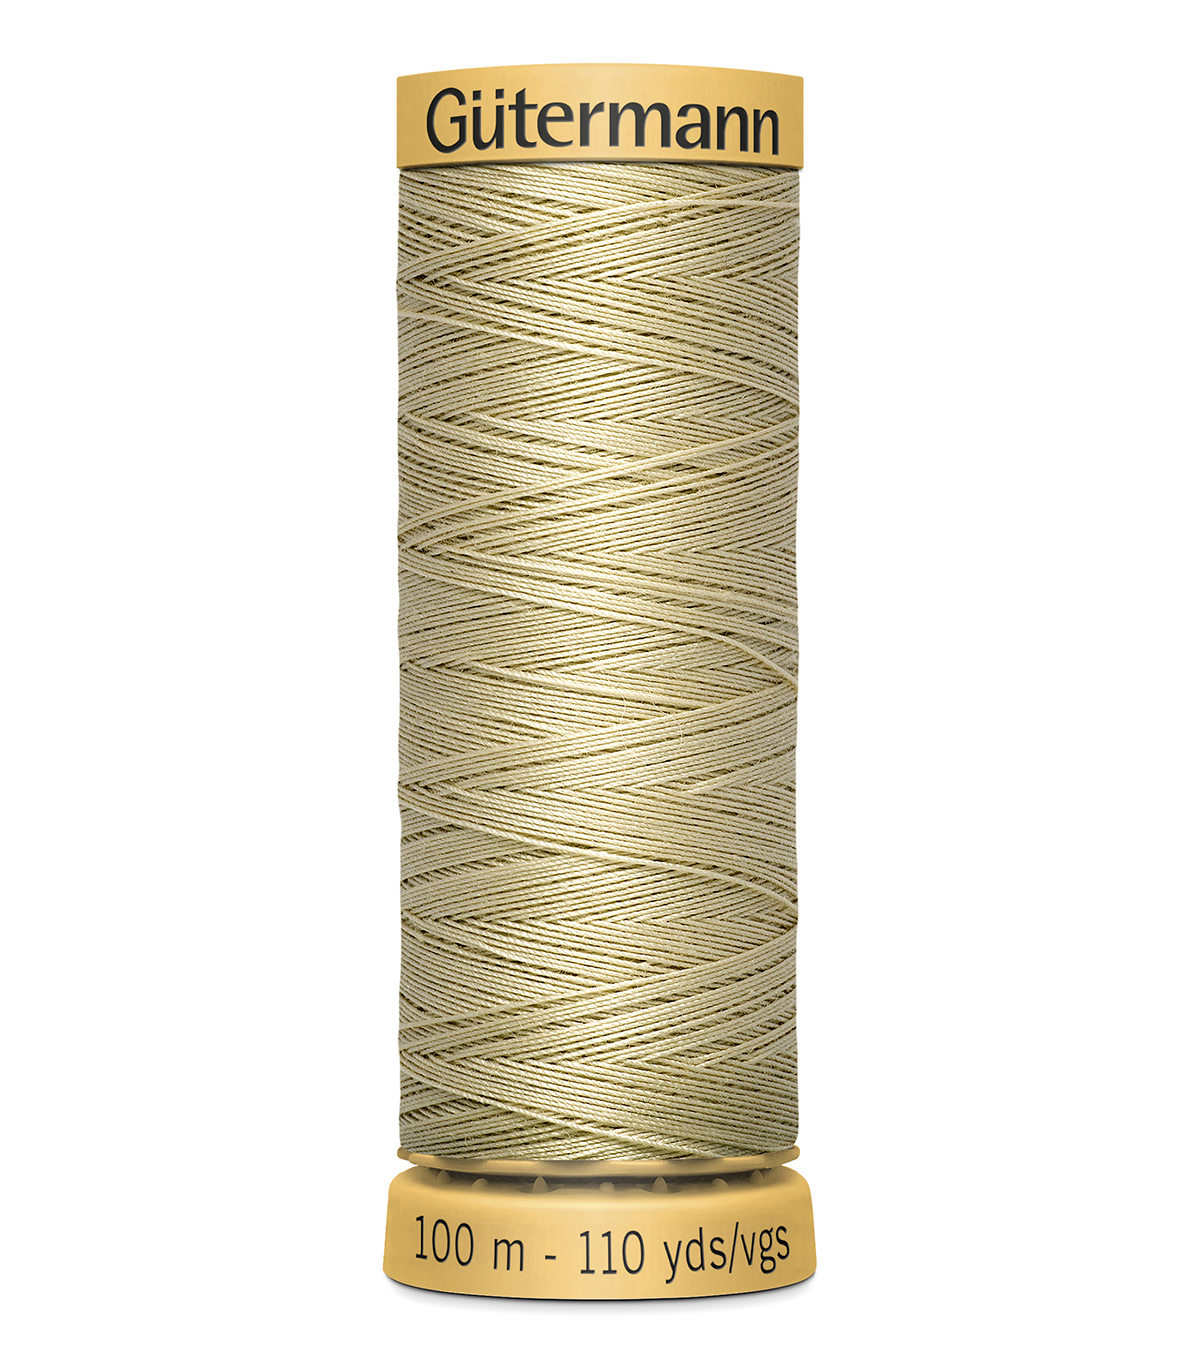 Gutermann Sew All Polyester Thread 110 Yards-Oranges & Yellows , Pongee